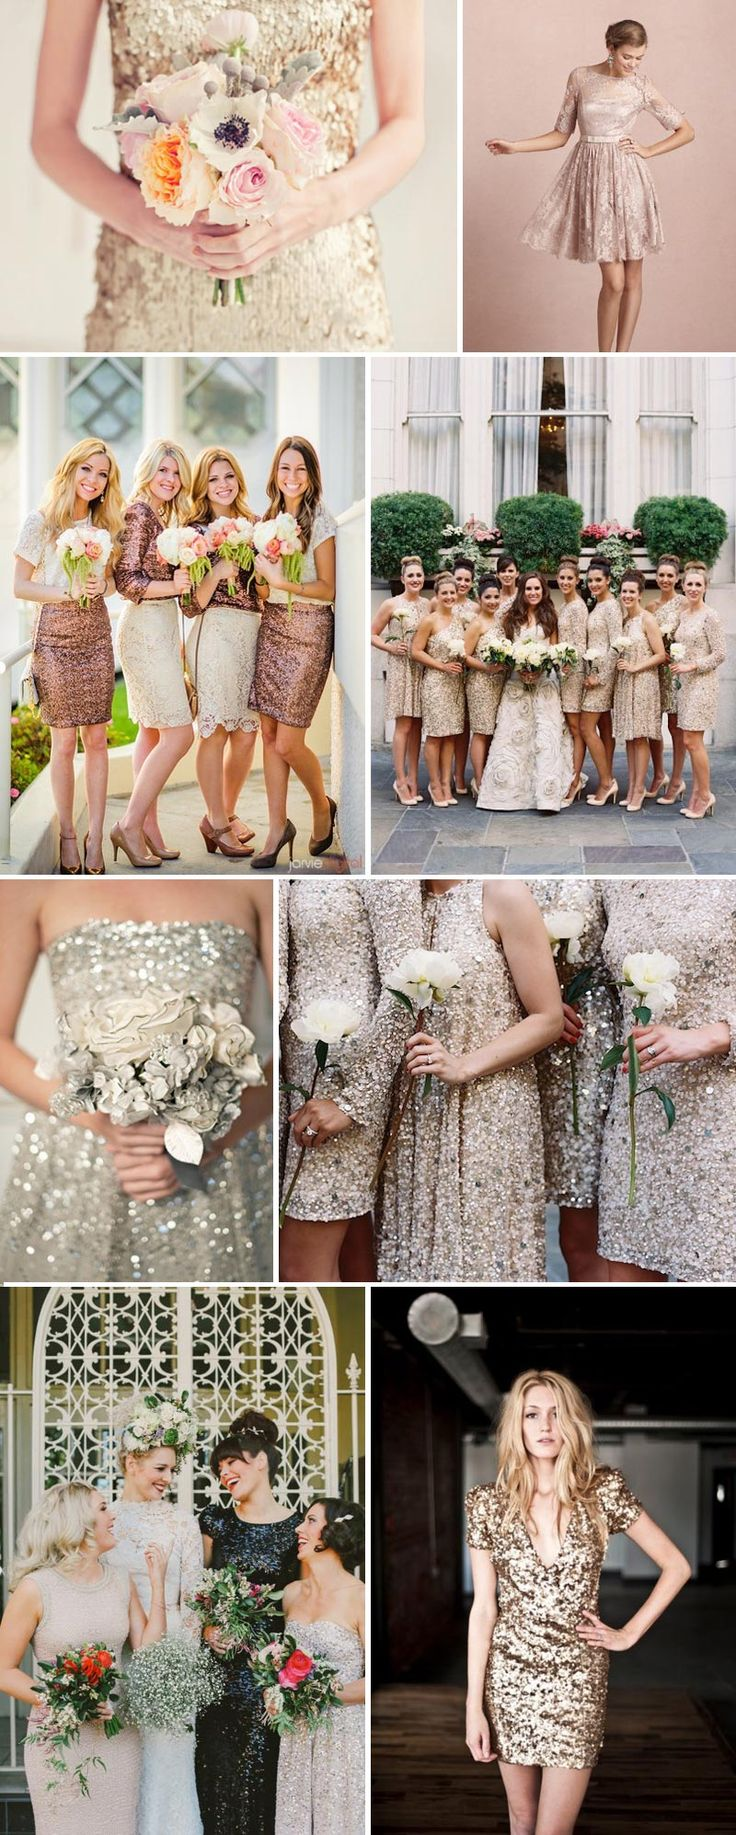 """Metallic, sequins, sparkly ~ winter wedding? Monica- you pinned one of these photos with the sequin dresses, the photo about is a full picture. I love the idea of """"the same but different"""" dresses. I I love sequins! Would be kinda cute for a holiday theme or being so close to New Years!"""